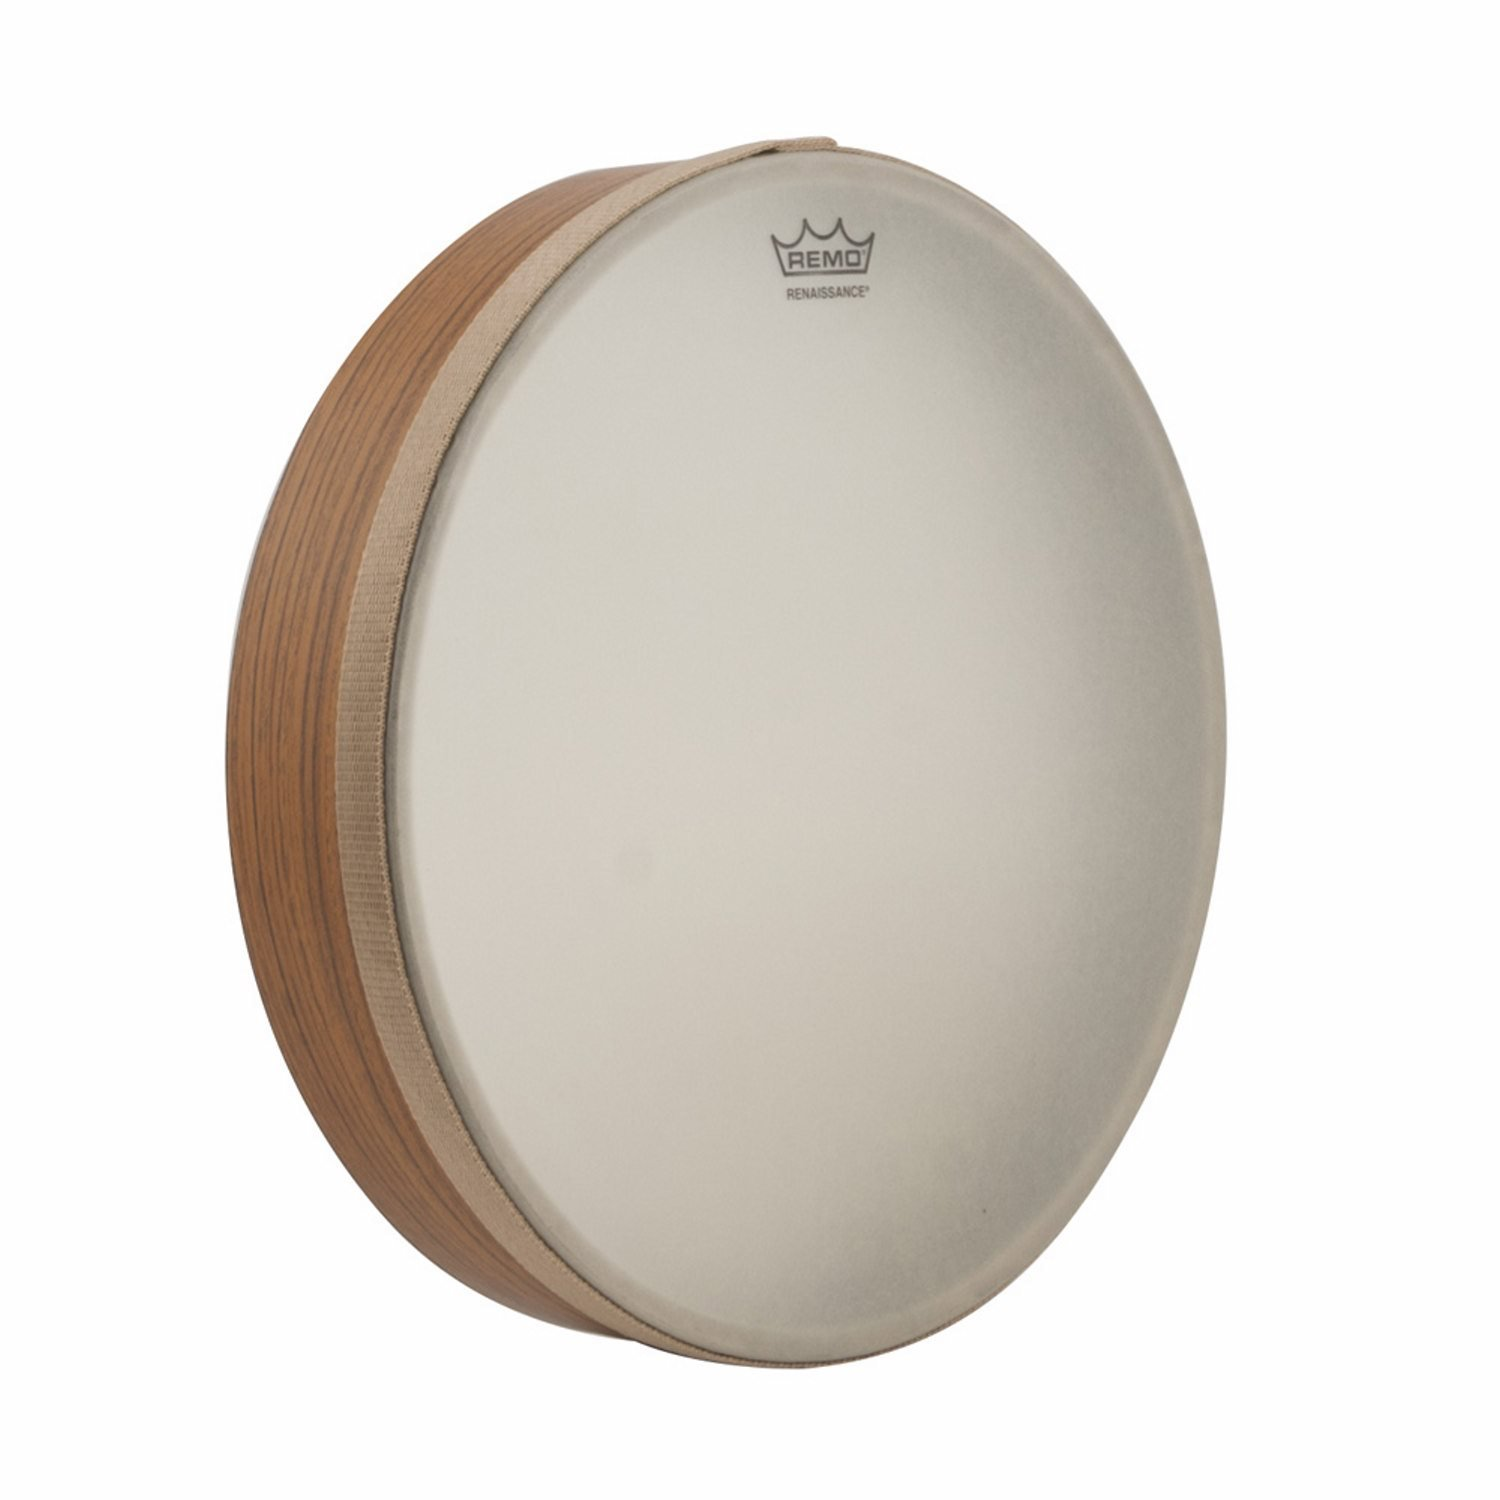 Remo 22 inch Renaissance Hand Drum with thumb cut-out Teen//Adult